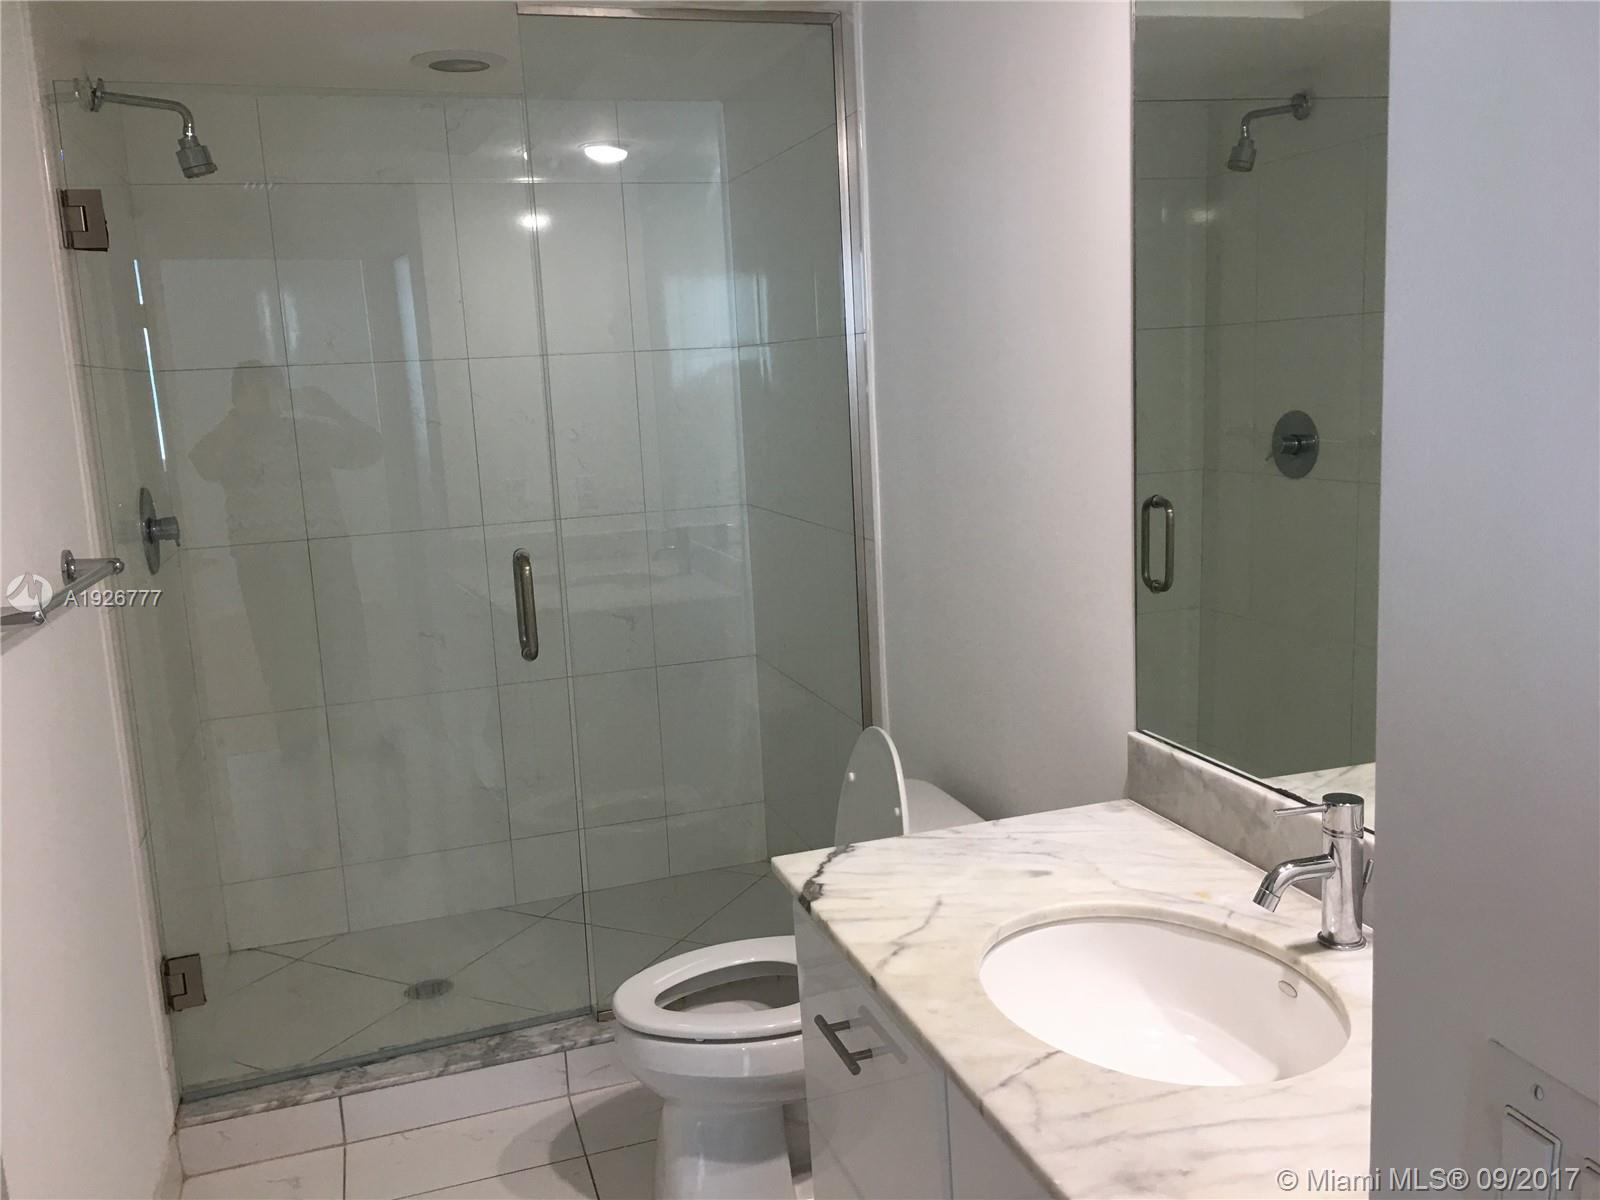 500 Brickell Avenue and 55 SE 6 Street, Miami, FL 33131, 500 Brickell #3810, Brickell, Miami A1926777 image #7